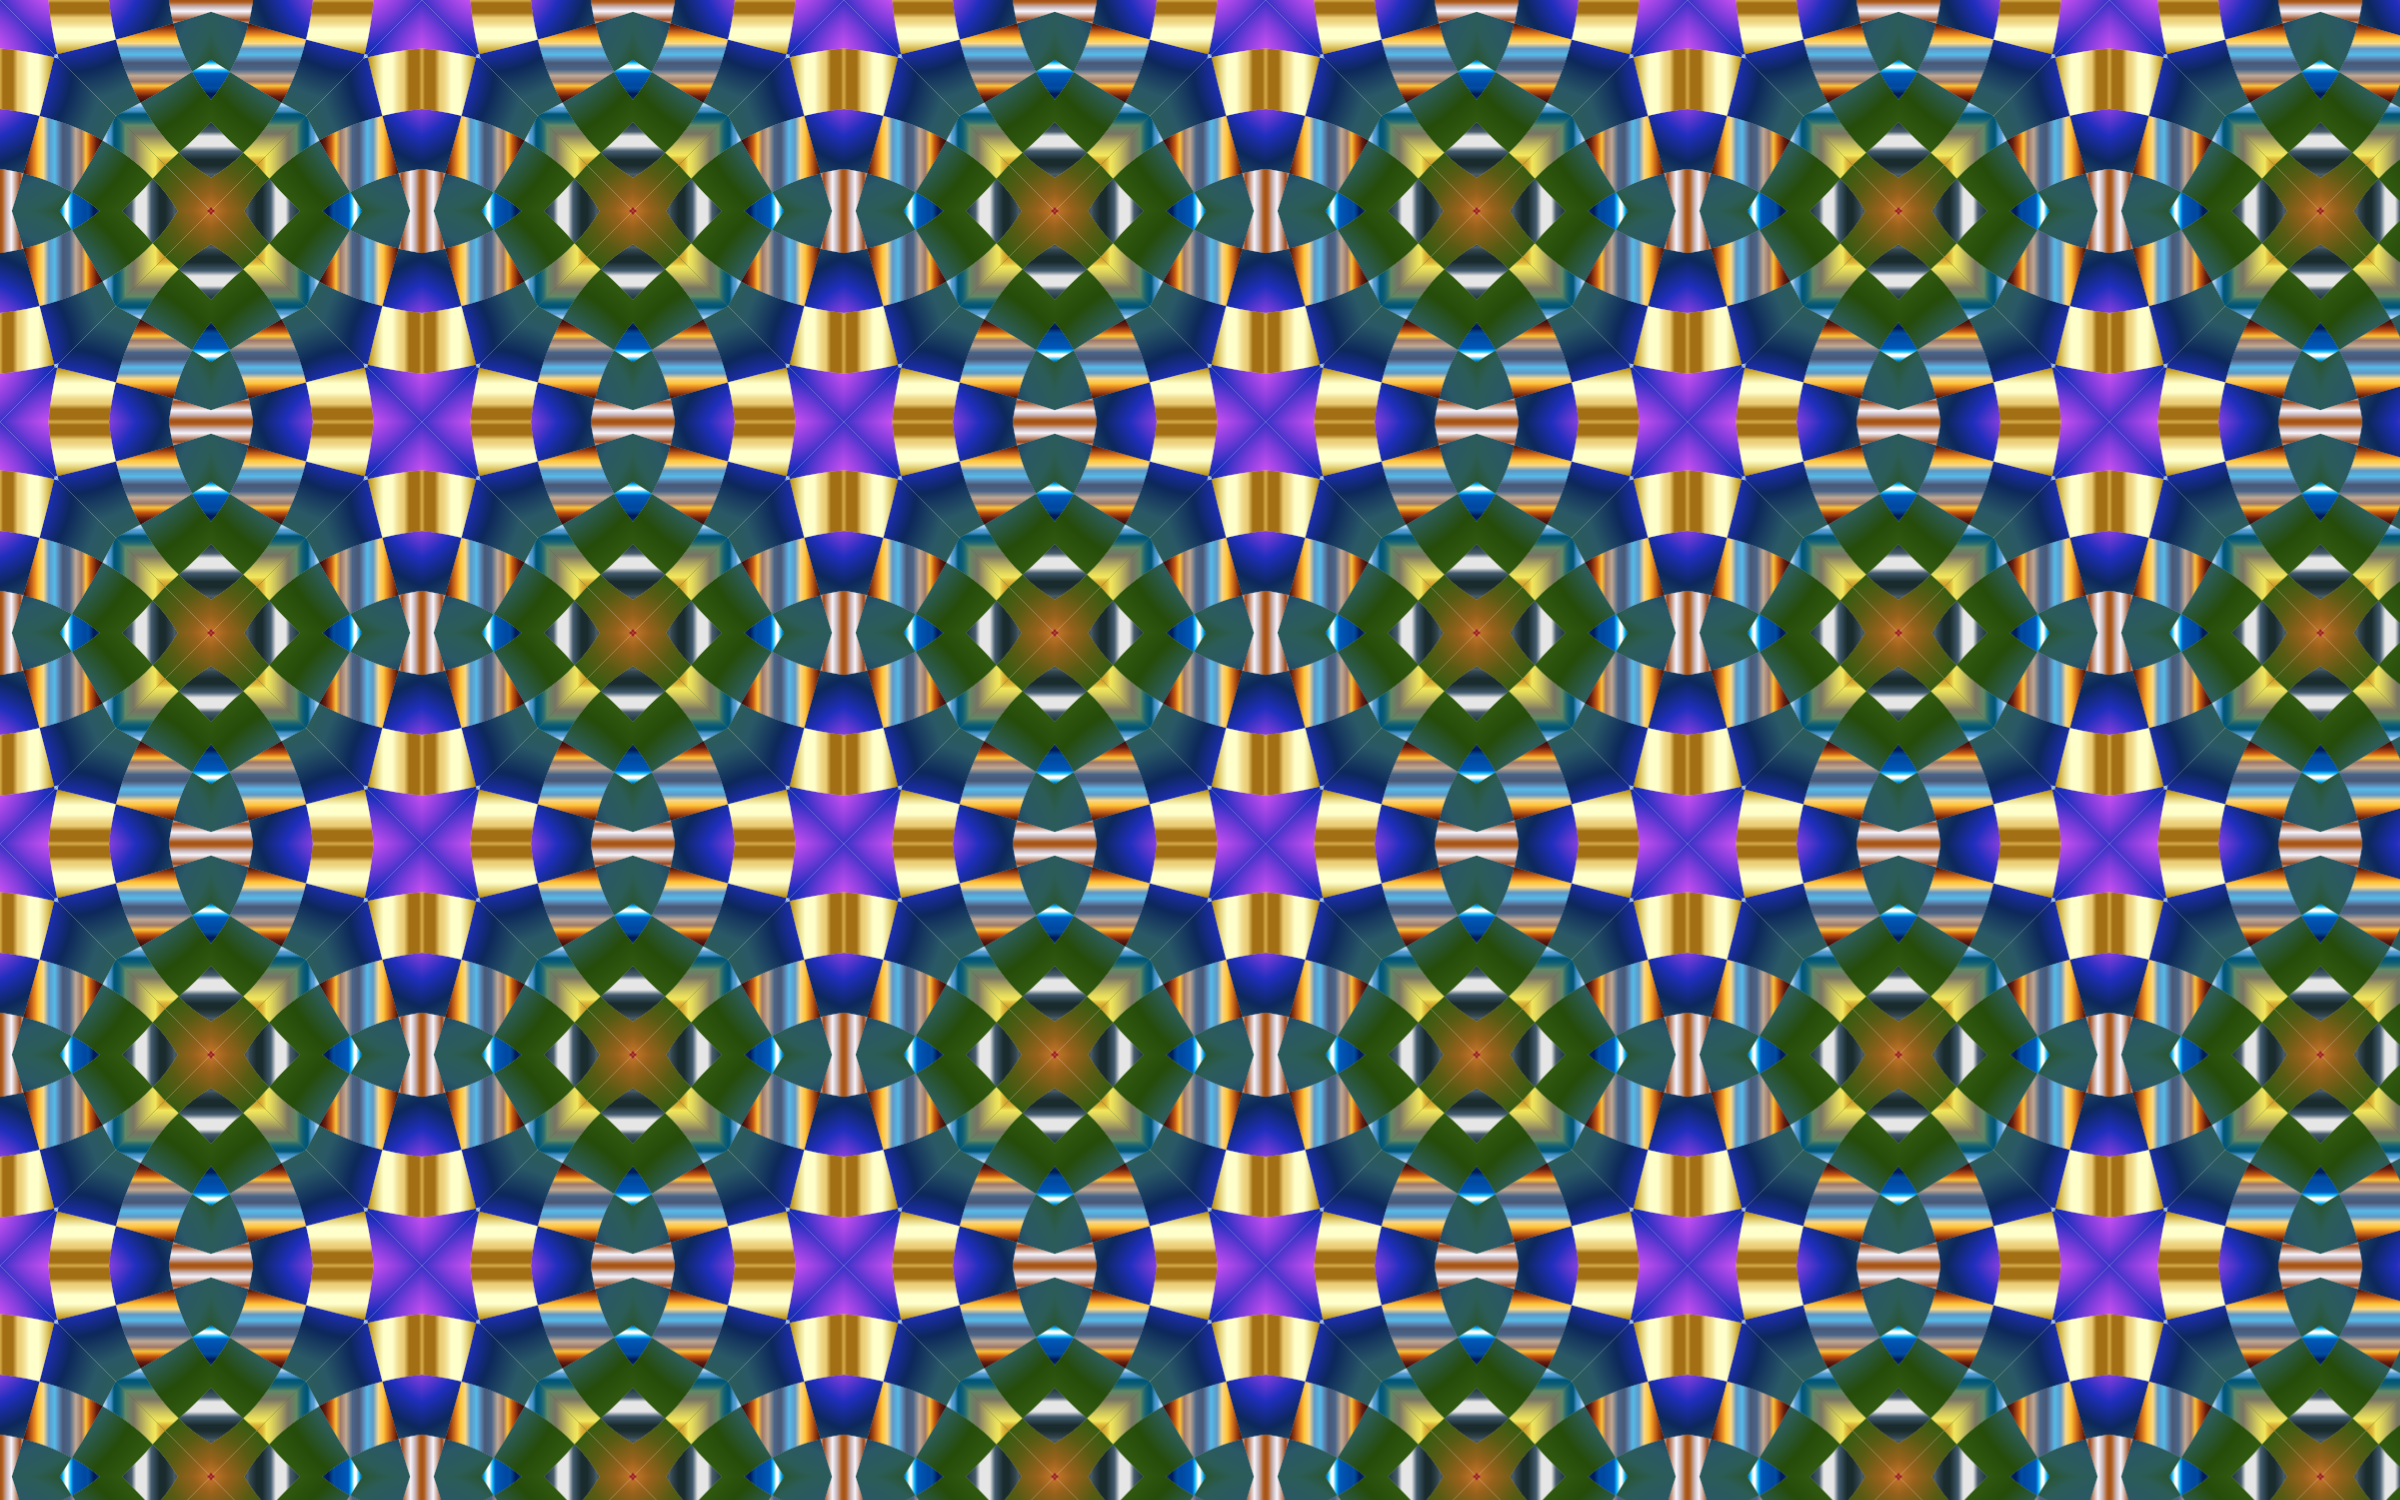 Seamless Pattern 81 by GDJ